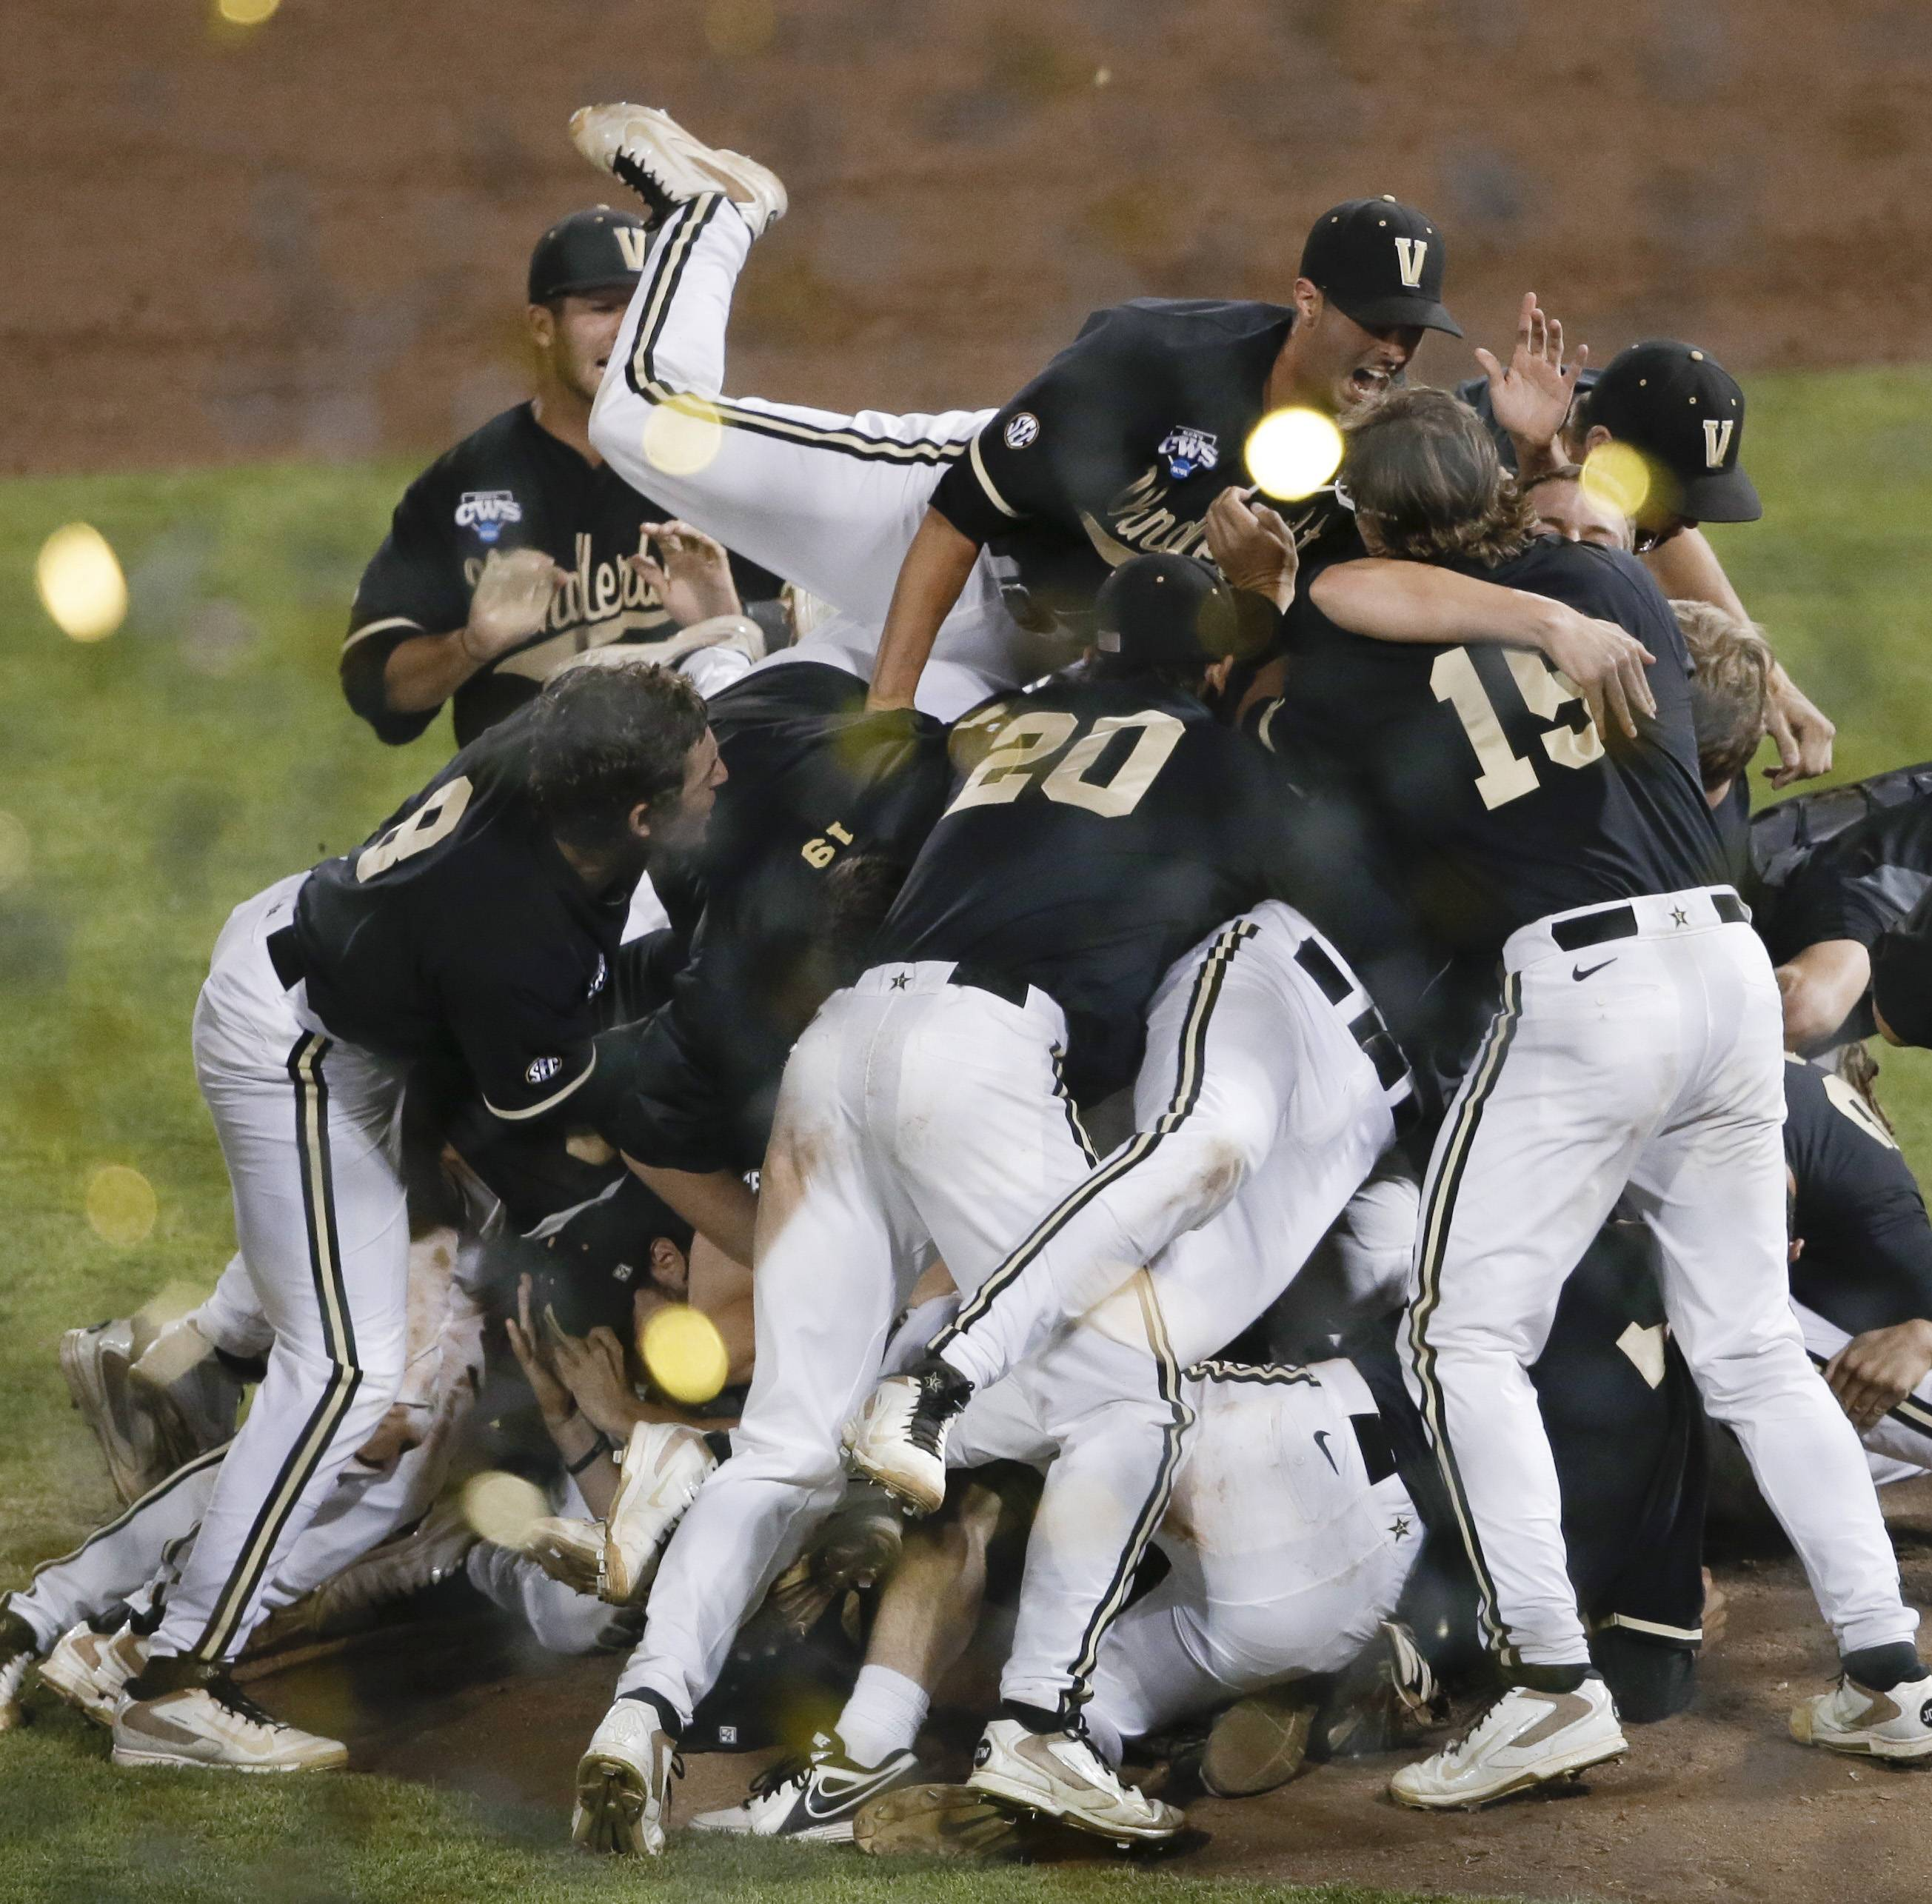 Vanderbilt won its first national championship in any sport Wednesday when its baseball team defeated defeated Virginia 3-2 in the deciding game of the College World Series.